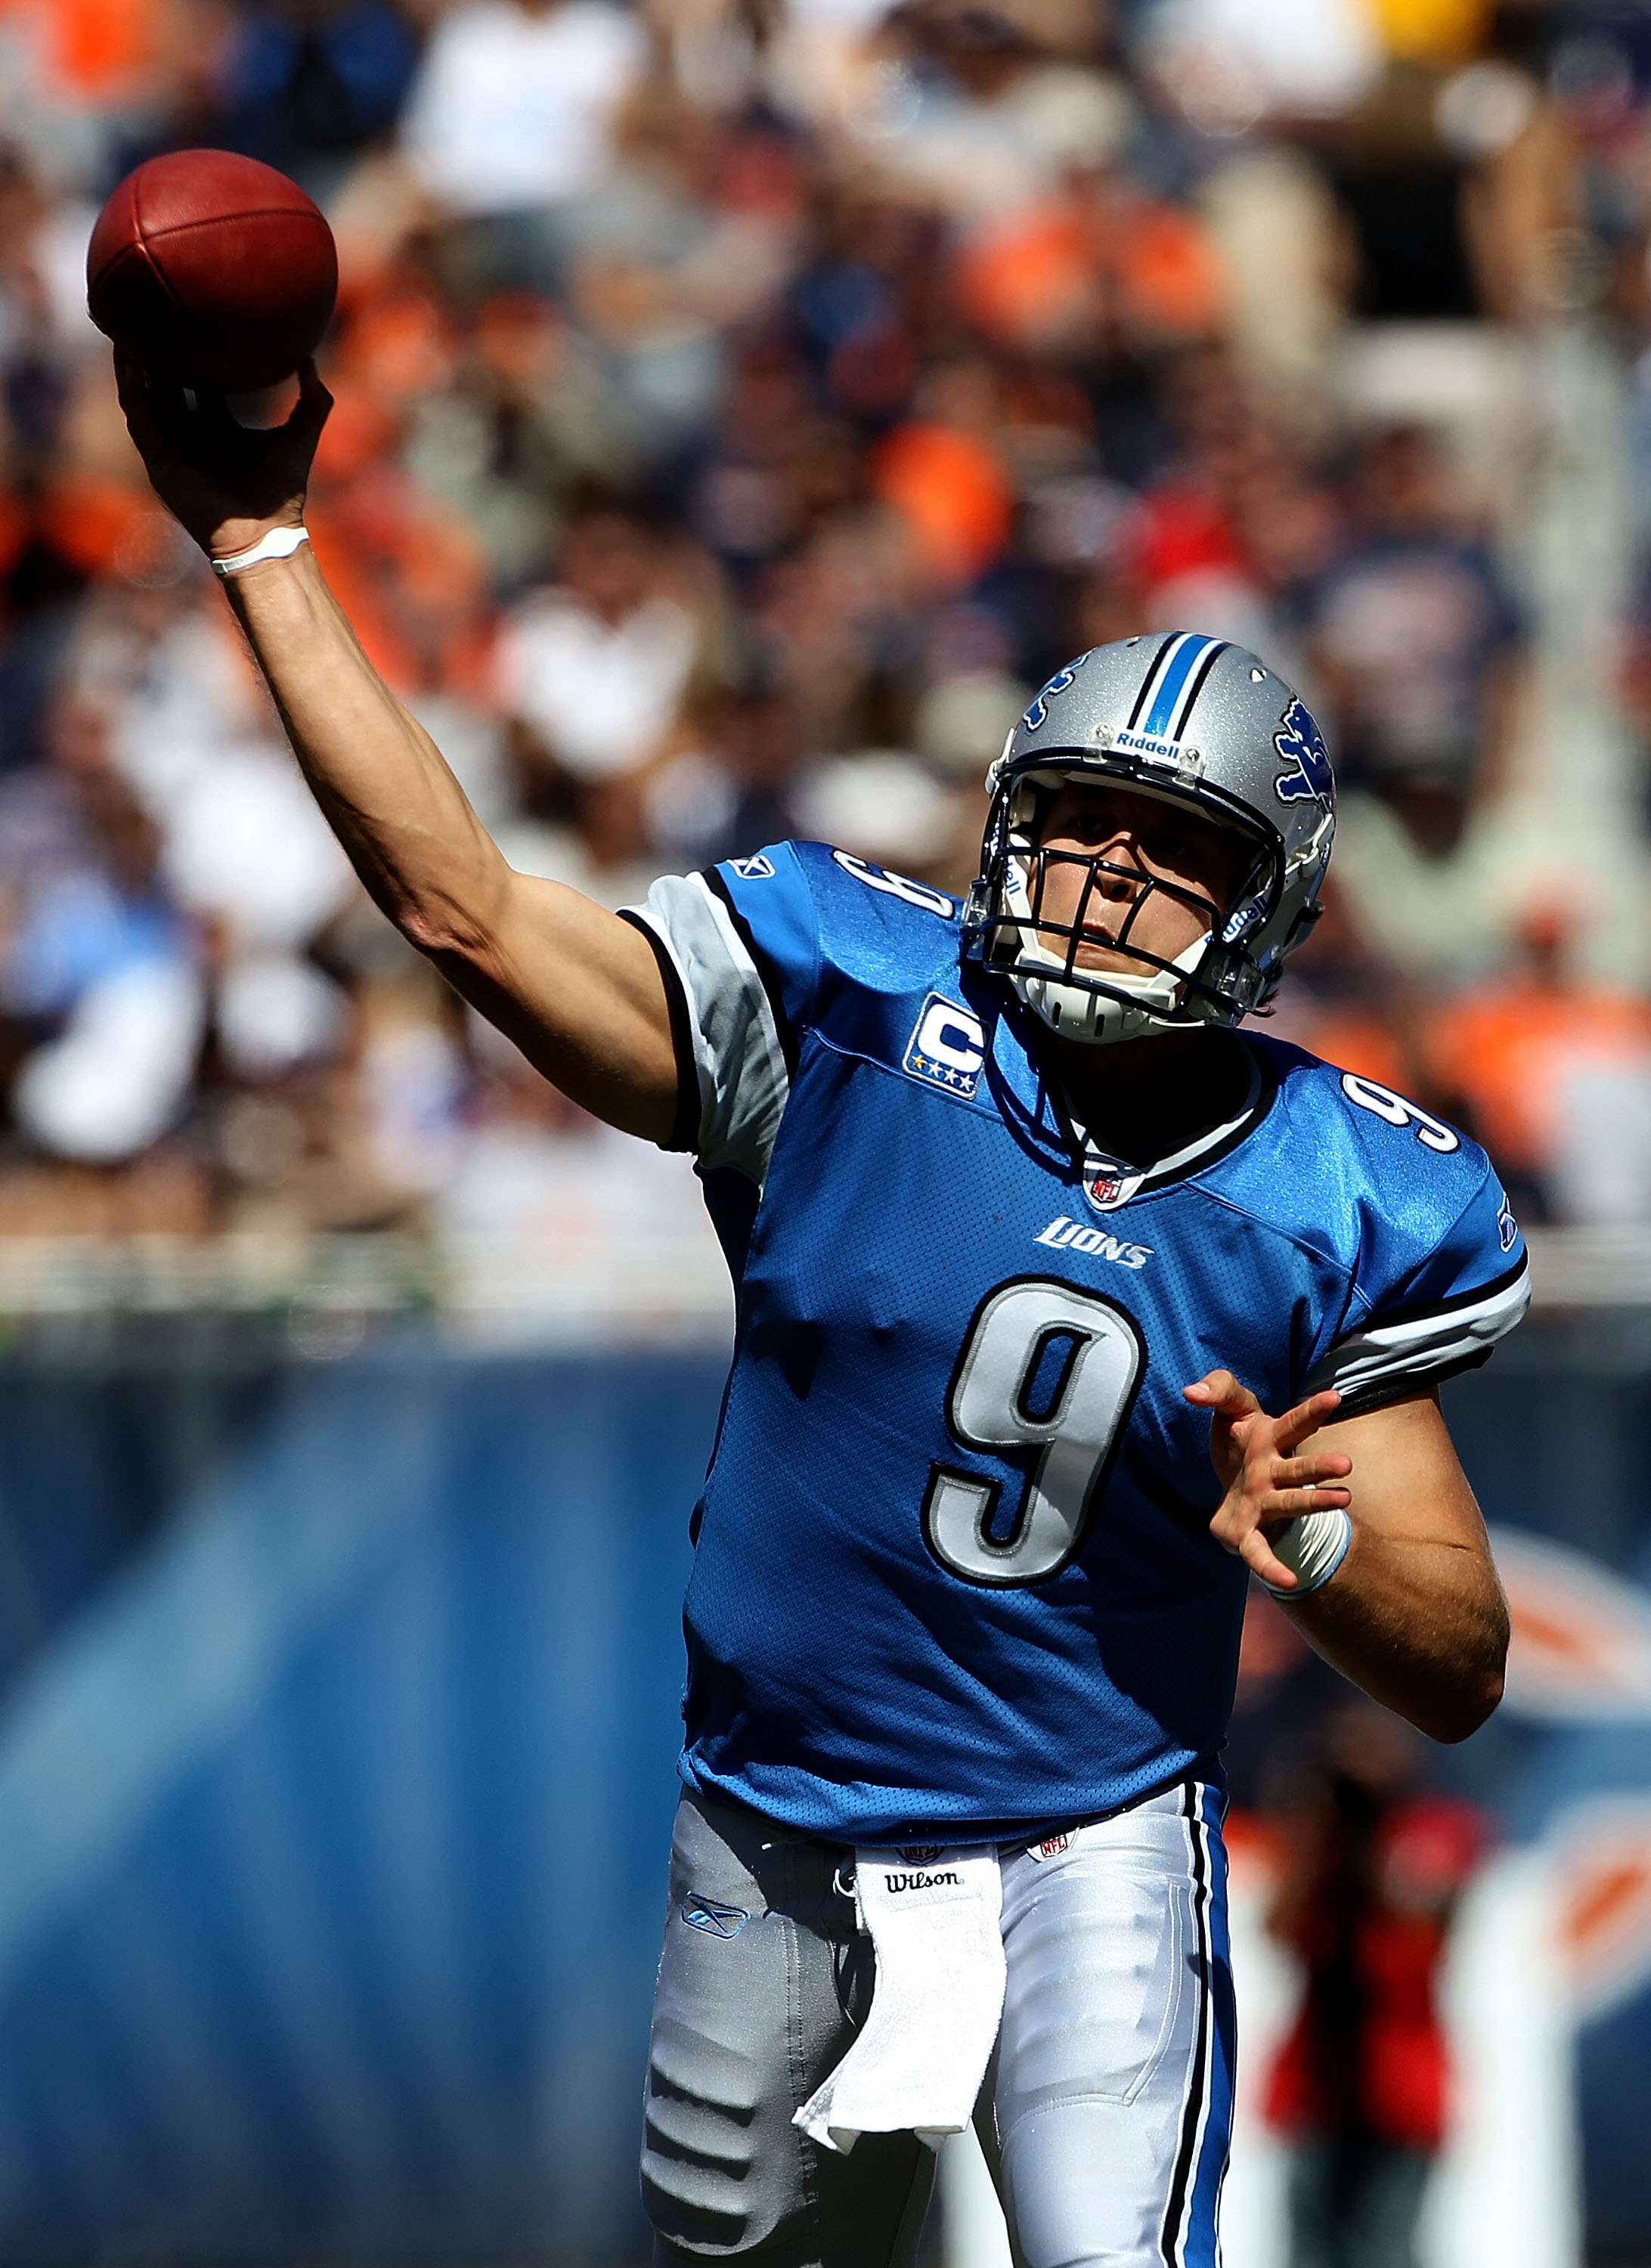 If Shaun Hill can do it, surely a healthy Stafford can